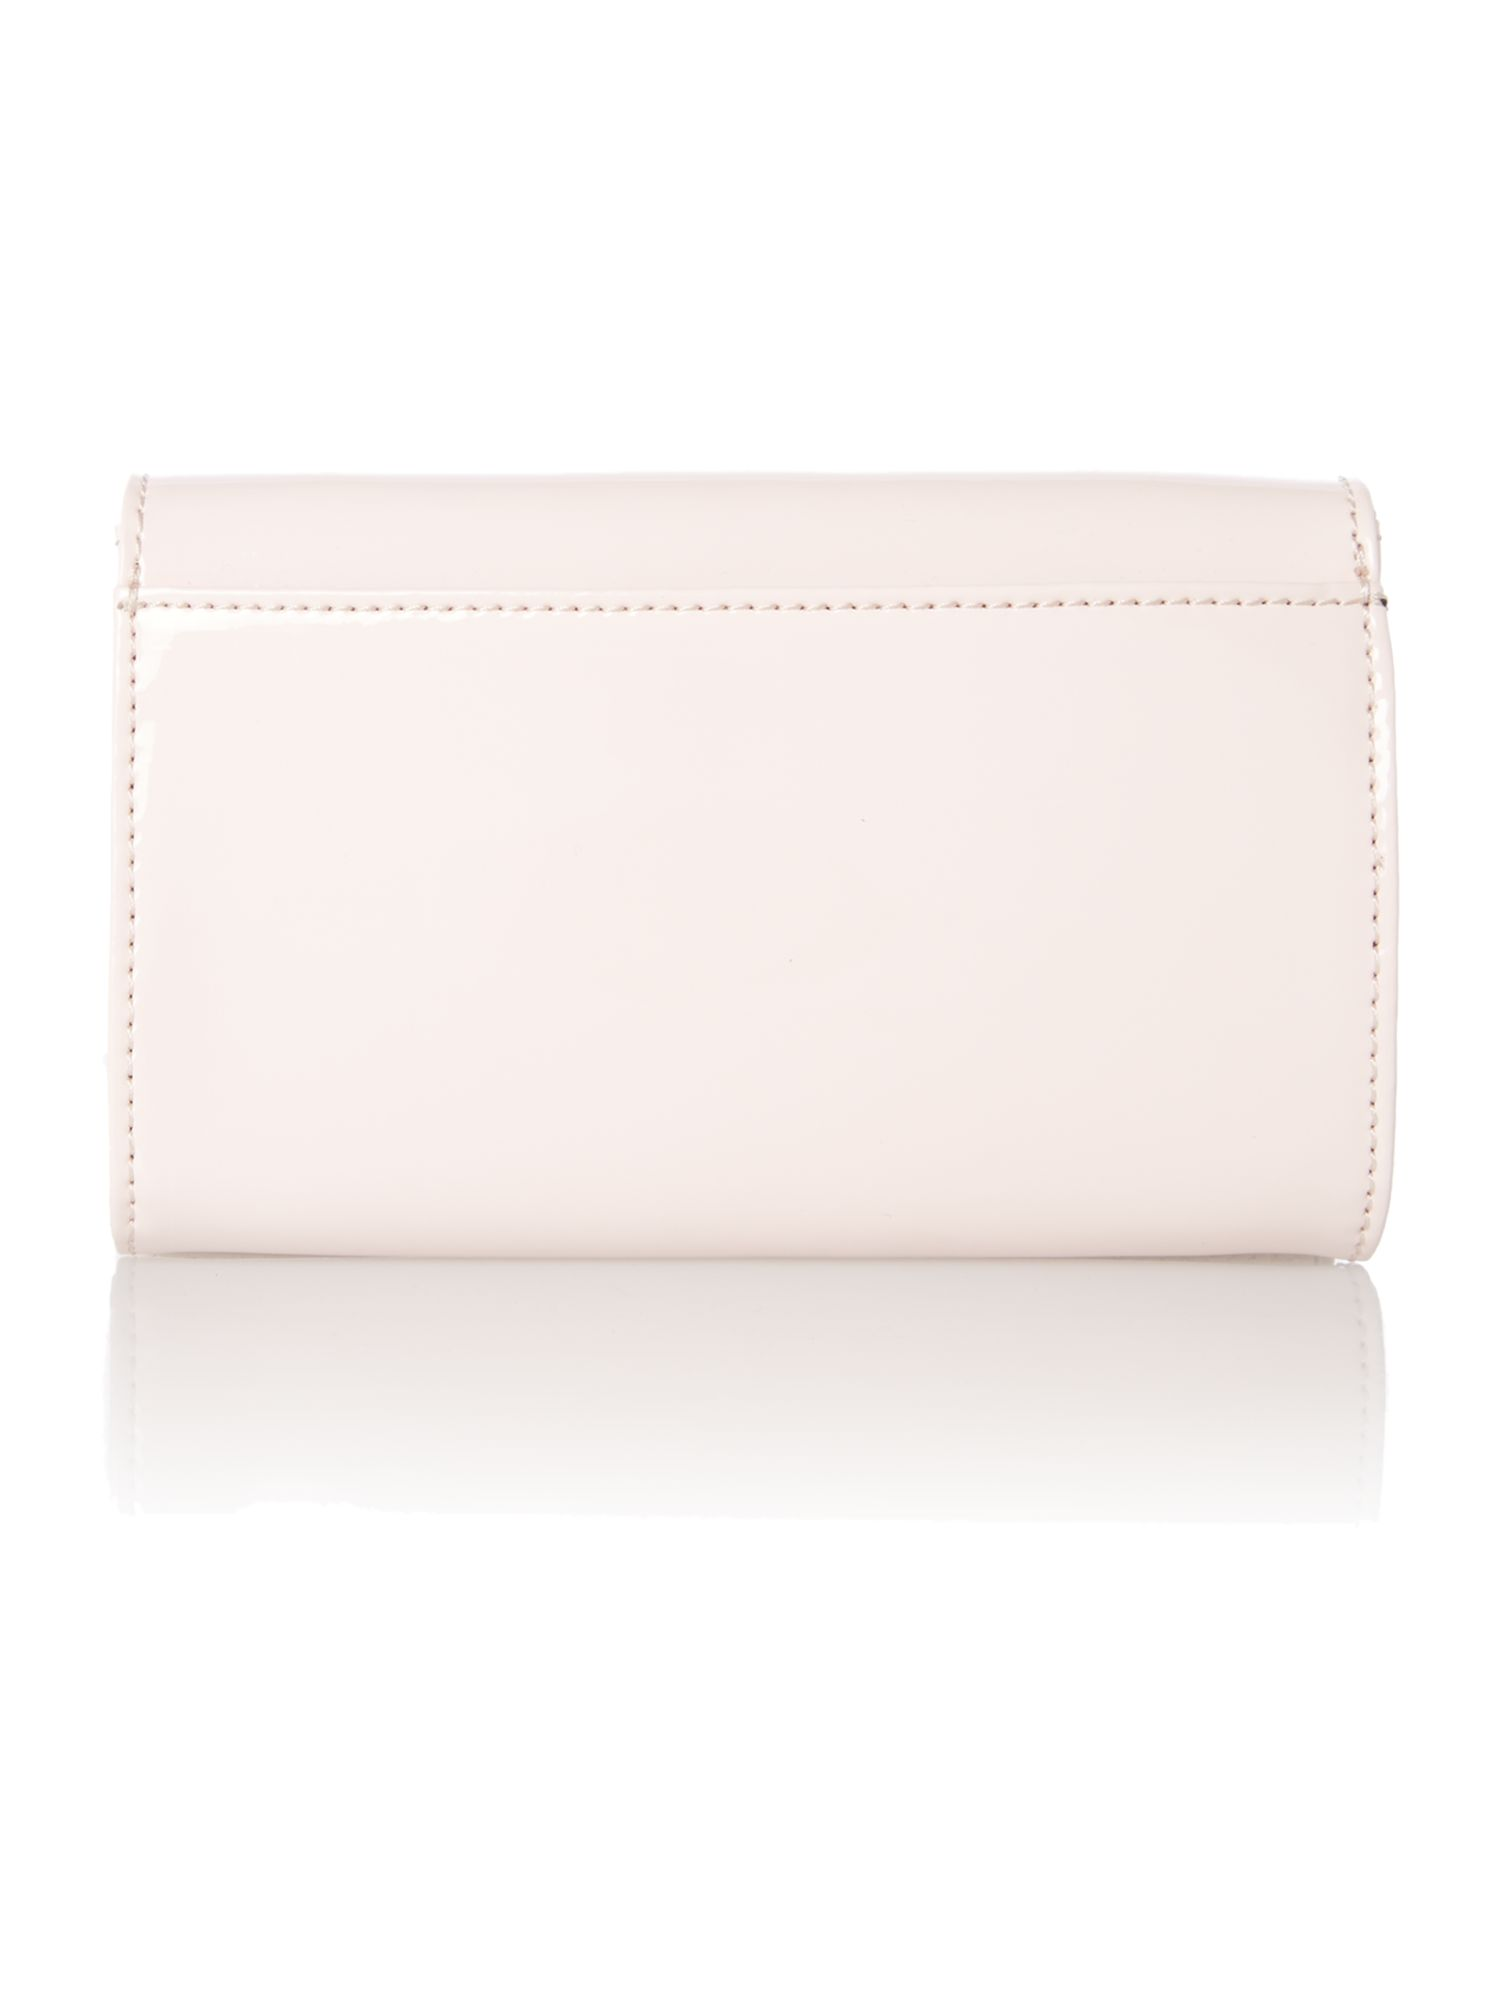 Nude mini patent cross body bag